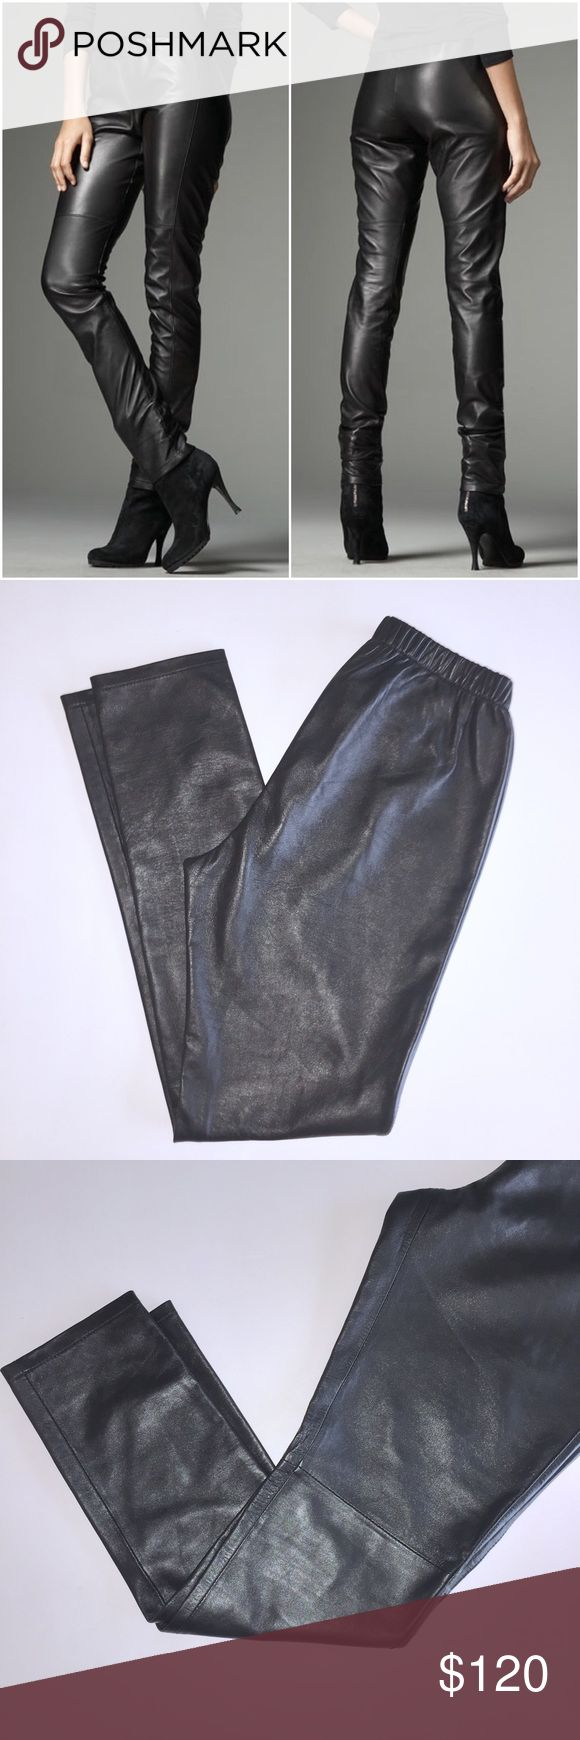 ✨🔥HOT🔥✨ Neiman Marcus Leather pants Gently worn 100% leather pants by Neiman Marcus. Your sleekest silhouette begins with a smooth dip in leather pants. Partake in the leather-leg trend and revel in the comfort of exclusive figure-hugging pants with an elasticized waist. They have little scuff by the crotch area, (see photo) Ruched, pull-on waist. Fitted from hip to hem. Check out my closet, bundle and make me an offer! Neiman Marcus Pants